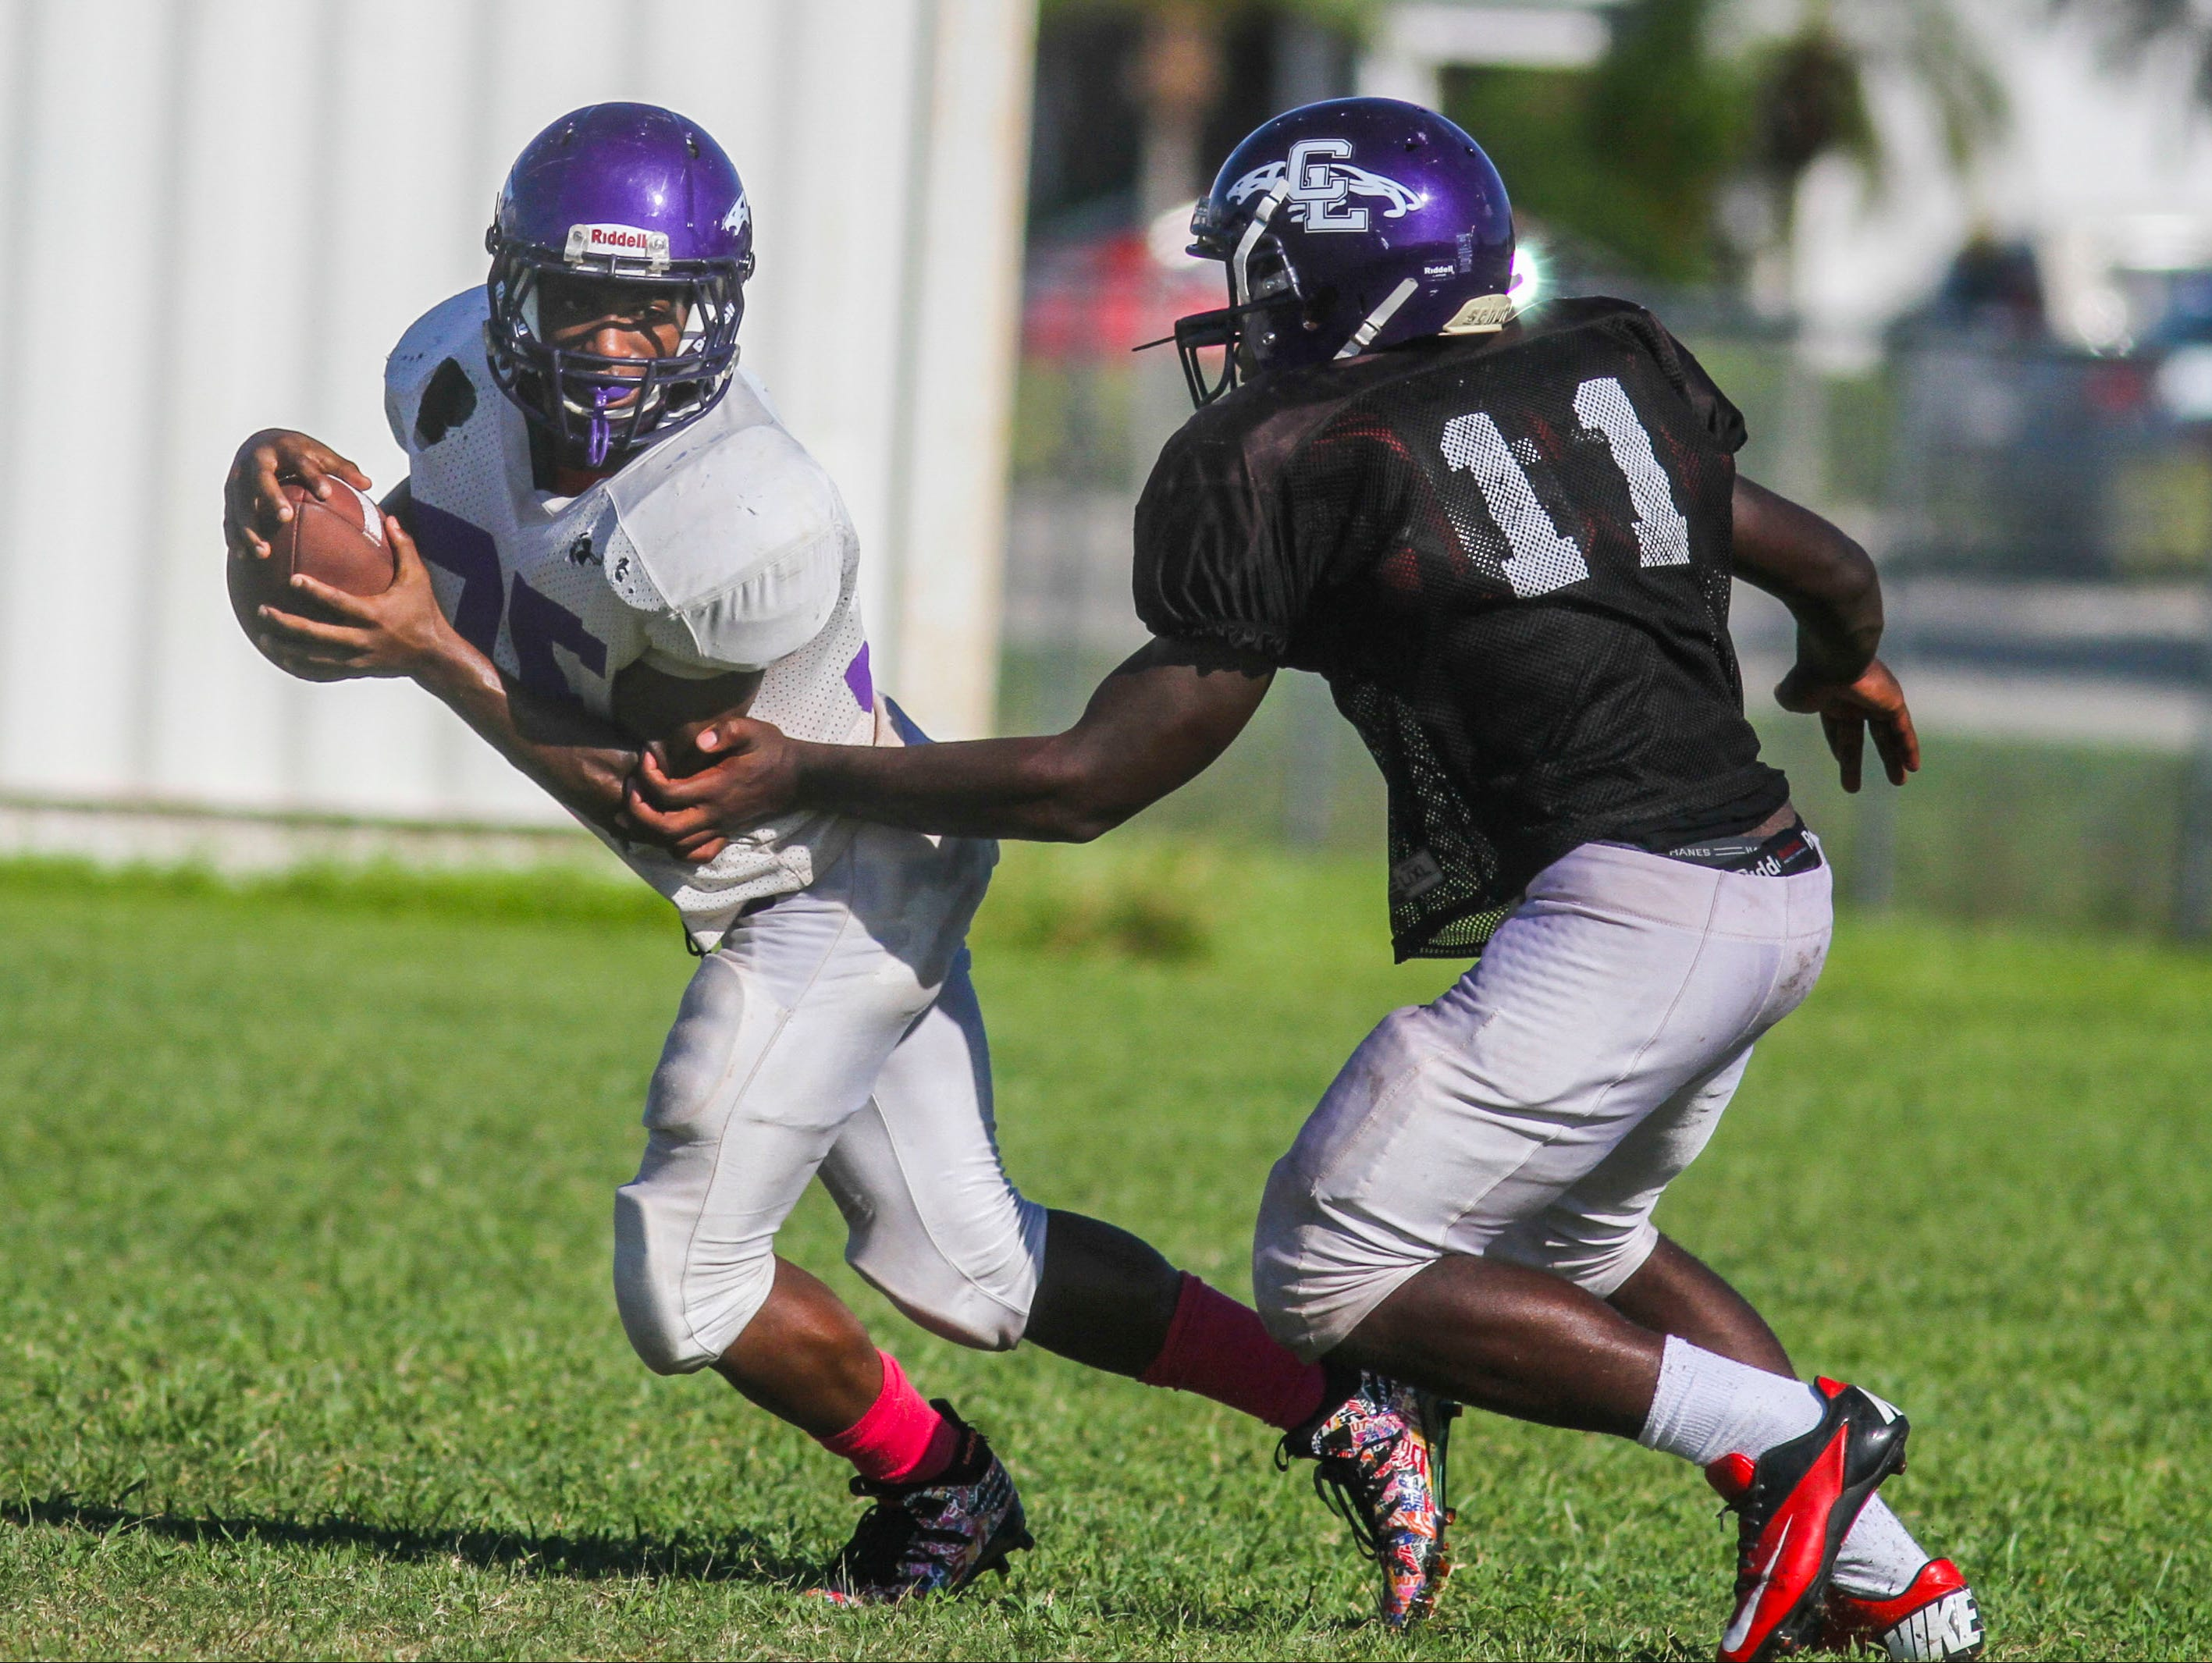 Cliff Moore, running back, for Cypress Lake High School carries the ball as they run plays during football practice Wednesday afternoon.